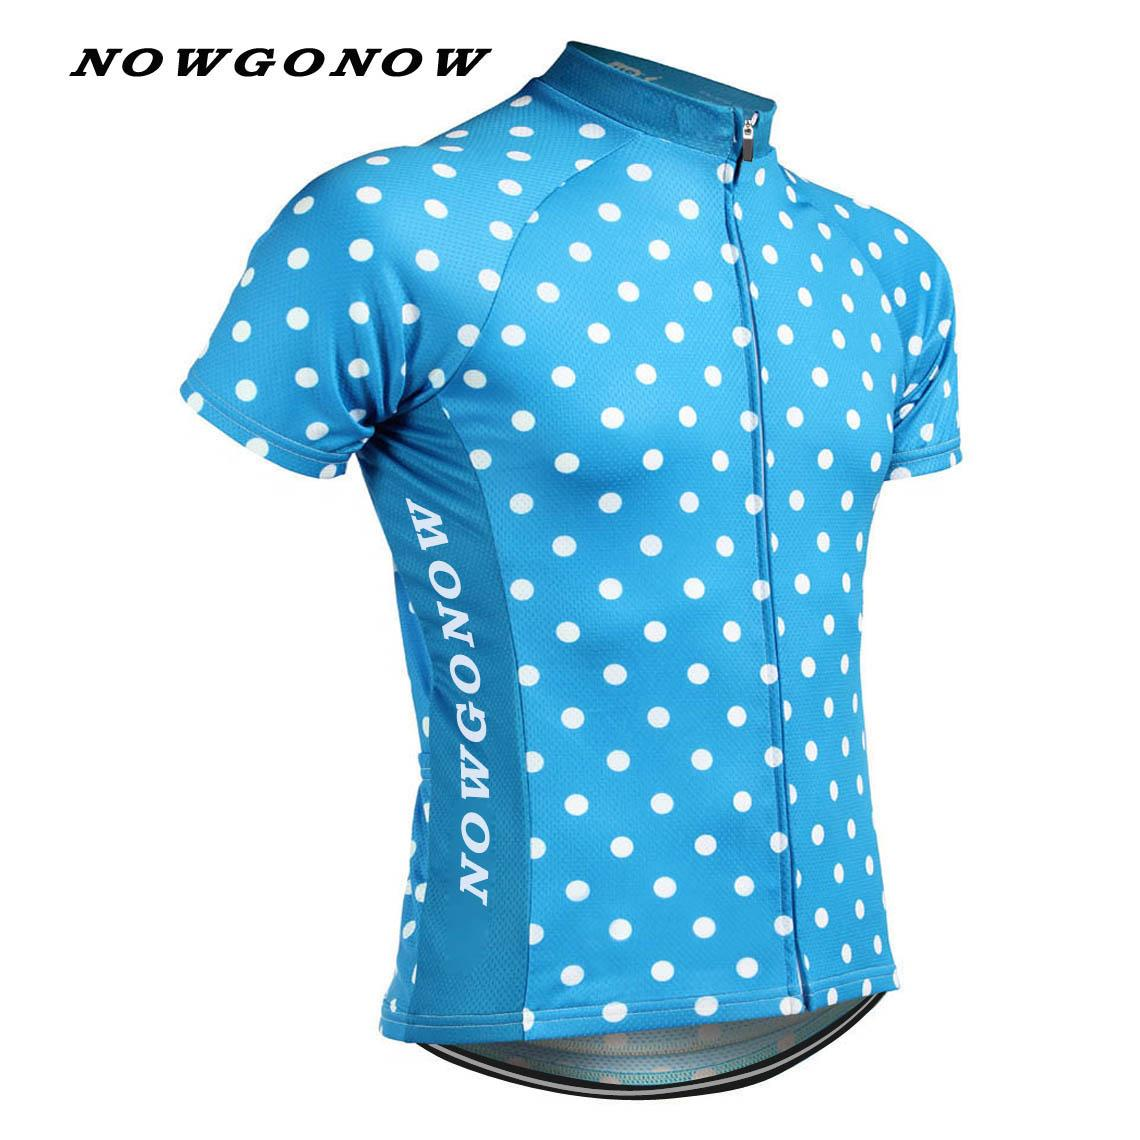 Man 2017 cycling jersey team blue Dots race bike mtb road ropa maillot ciclismo wear clothing riding racing NOWGONOW usa Brand